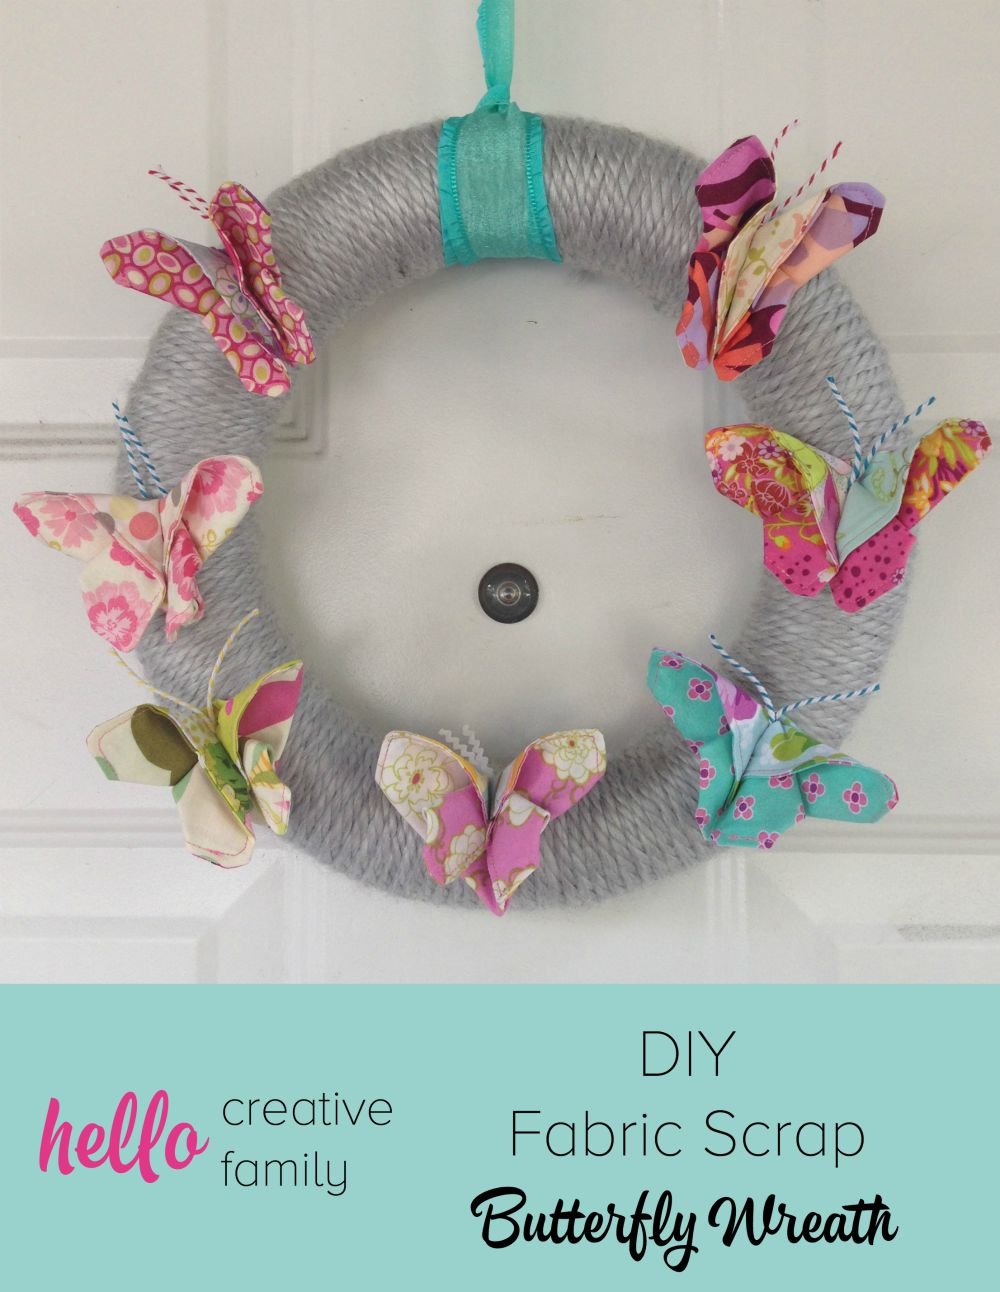 Looking For A Fun Project To Make With Fabric Scraps Check Out This DIY Fabric  Scrap